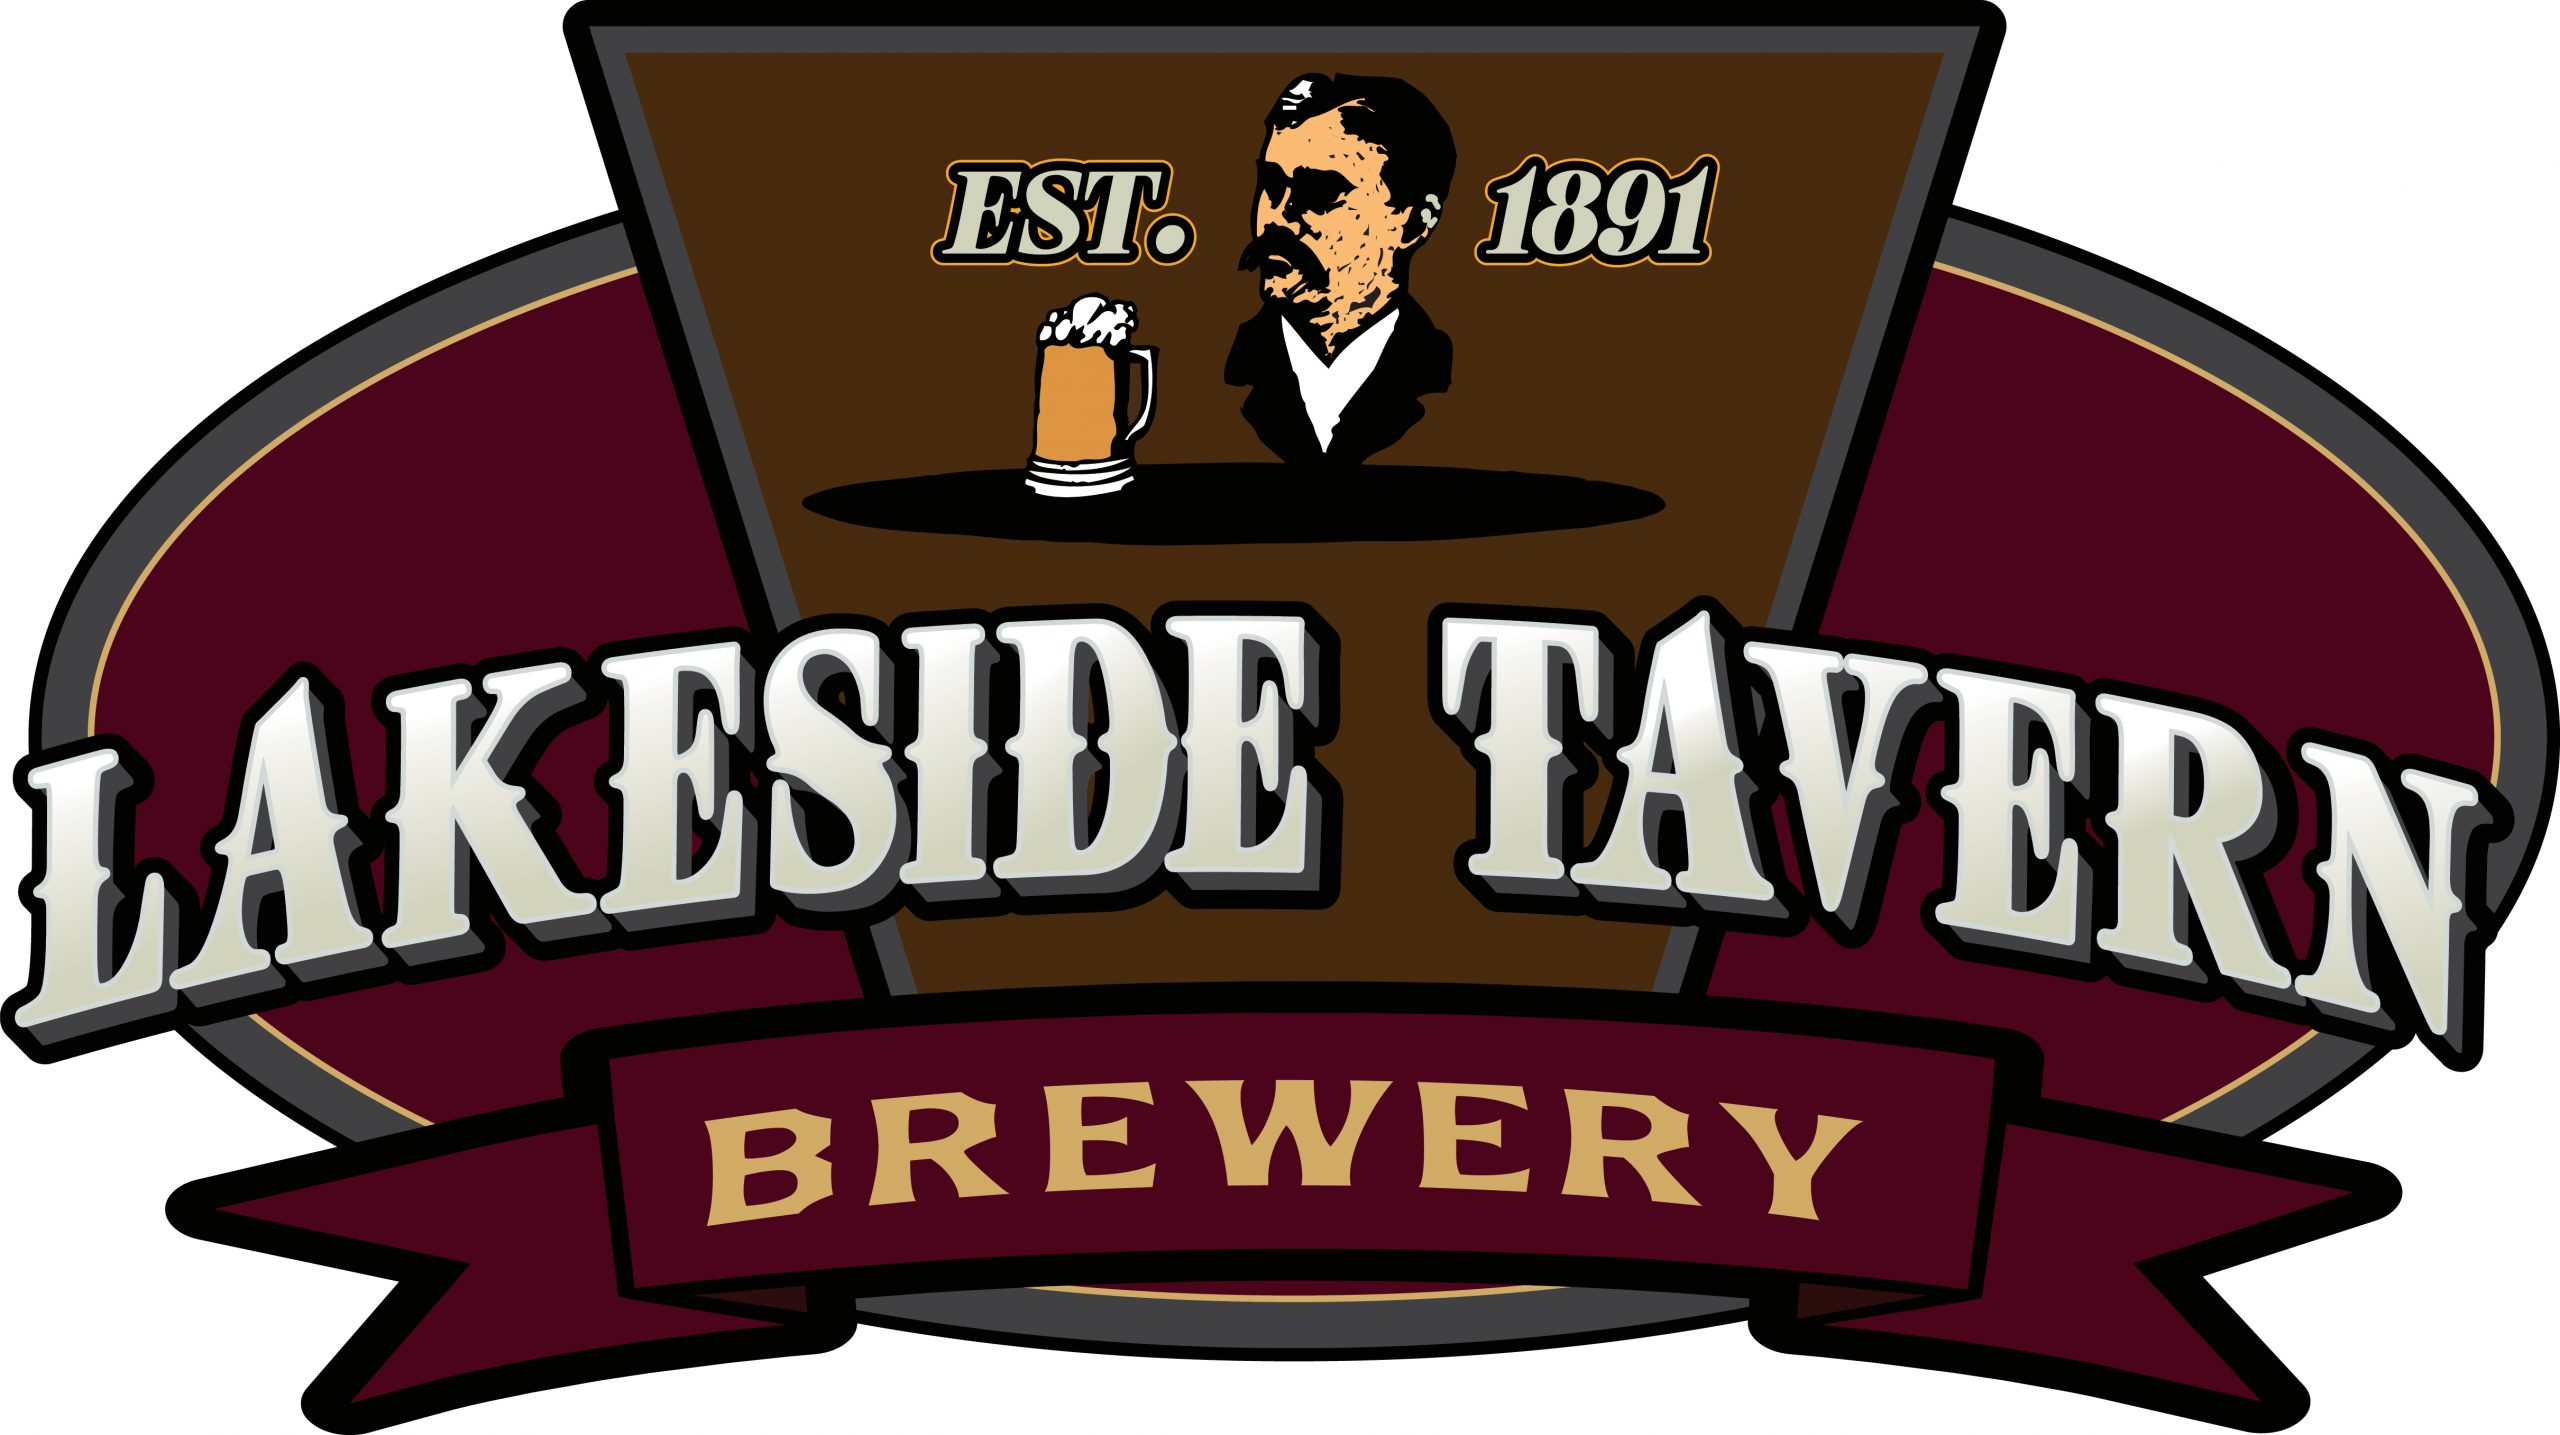 https://www.mncraftbrew.org/wp-content/uploads/2020/09/lakeside_tavern_brewery_logo2015_use_003-scaled.jpg